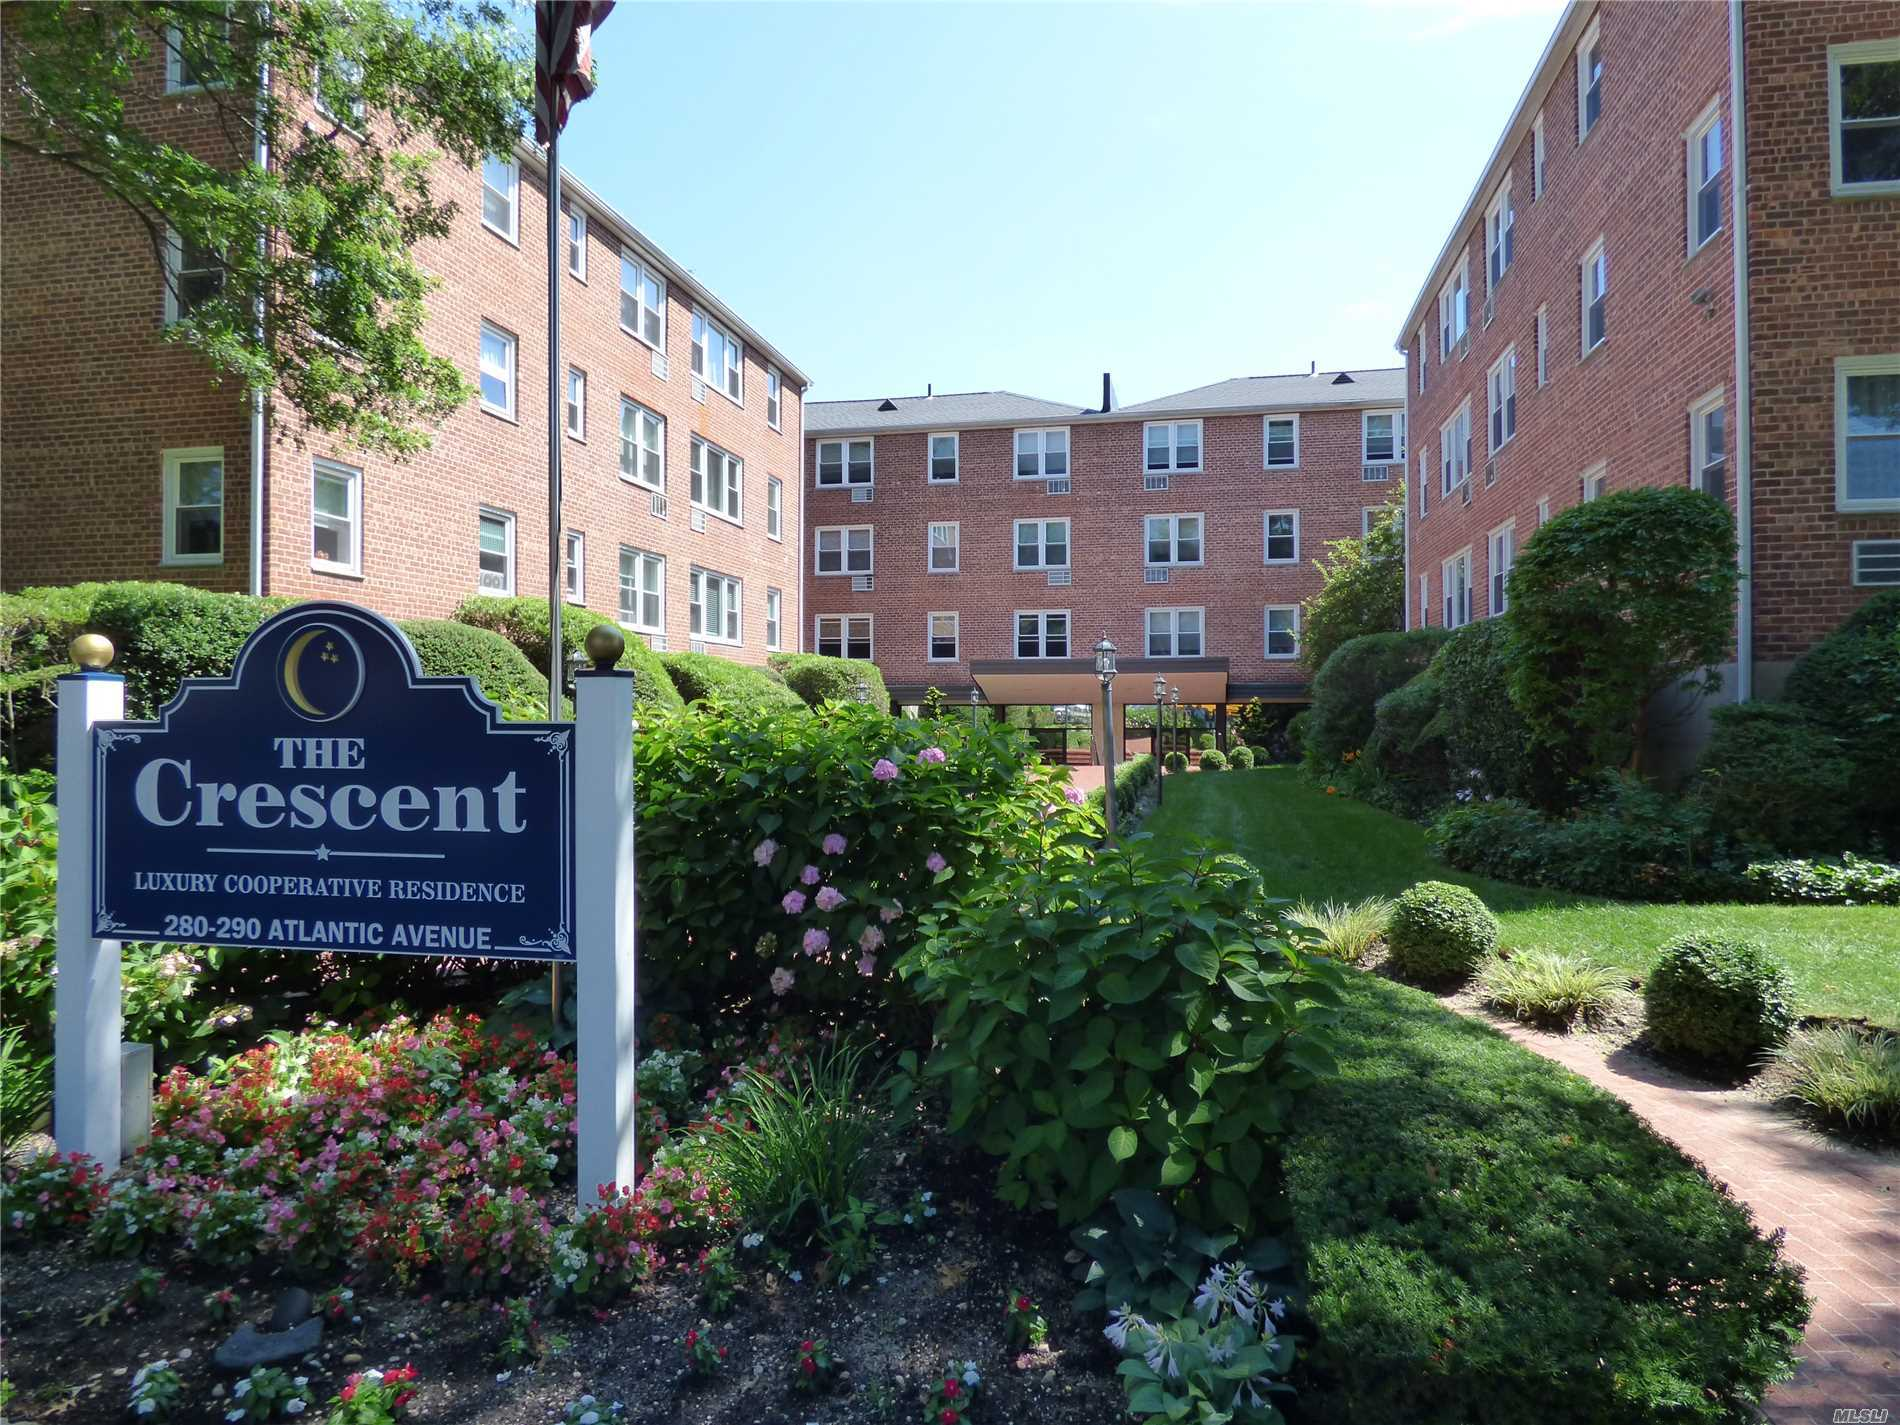 Spacious & Bright 4 Rm(1 Br) Corner Co-Op Unit On Top Floor In Luxury Concierge Building. Great Space & Plenty Of Closets. Large Living Room/Dining Room, Eik Kitchen, Spacious Br; Office Area; Private Fitness Center, Community Room; Laundry On Each Floor; Private Storage Unit; Wait List For $35 Outdoor Parking, $65 Indoor Garage. Walk To Worship. Walk To Centre Ave Lirr Station 39 Min To Nyc!